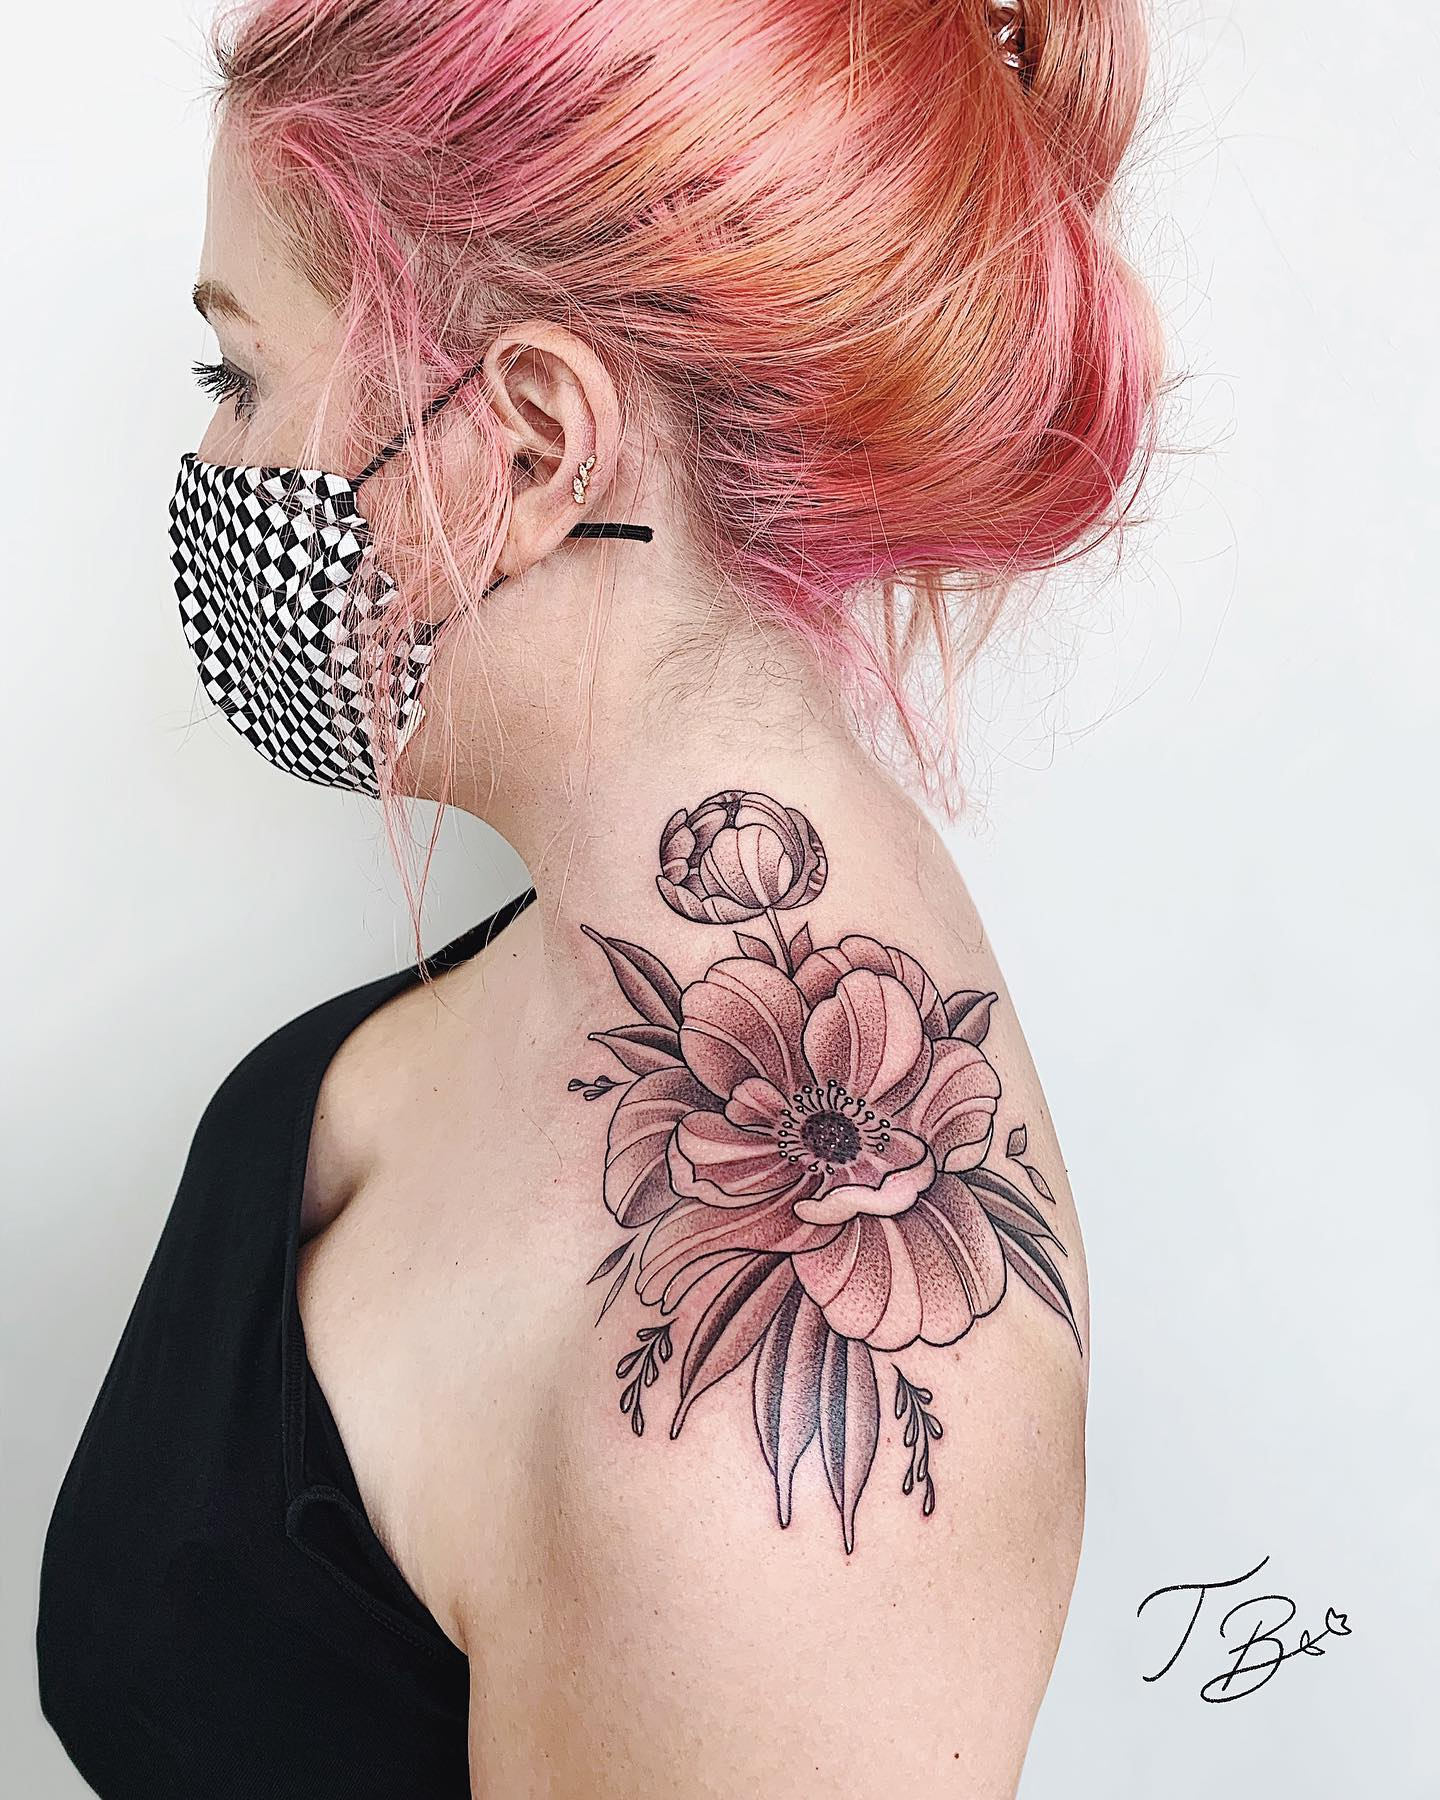 A beautiful shoulder piece from the one and only thaisblanc 🌸 She still has some space this year if you're looking for a delicate new piece 💗💗 feel free to email her through the email link in her bio or contact us through the enquiry form on our website! - https://studioxiii.tattoo/tattoo-enquiry/  - - - -                  totaltattoo